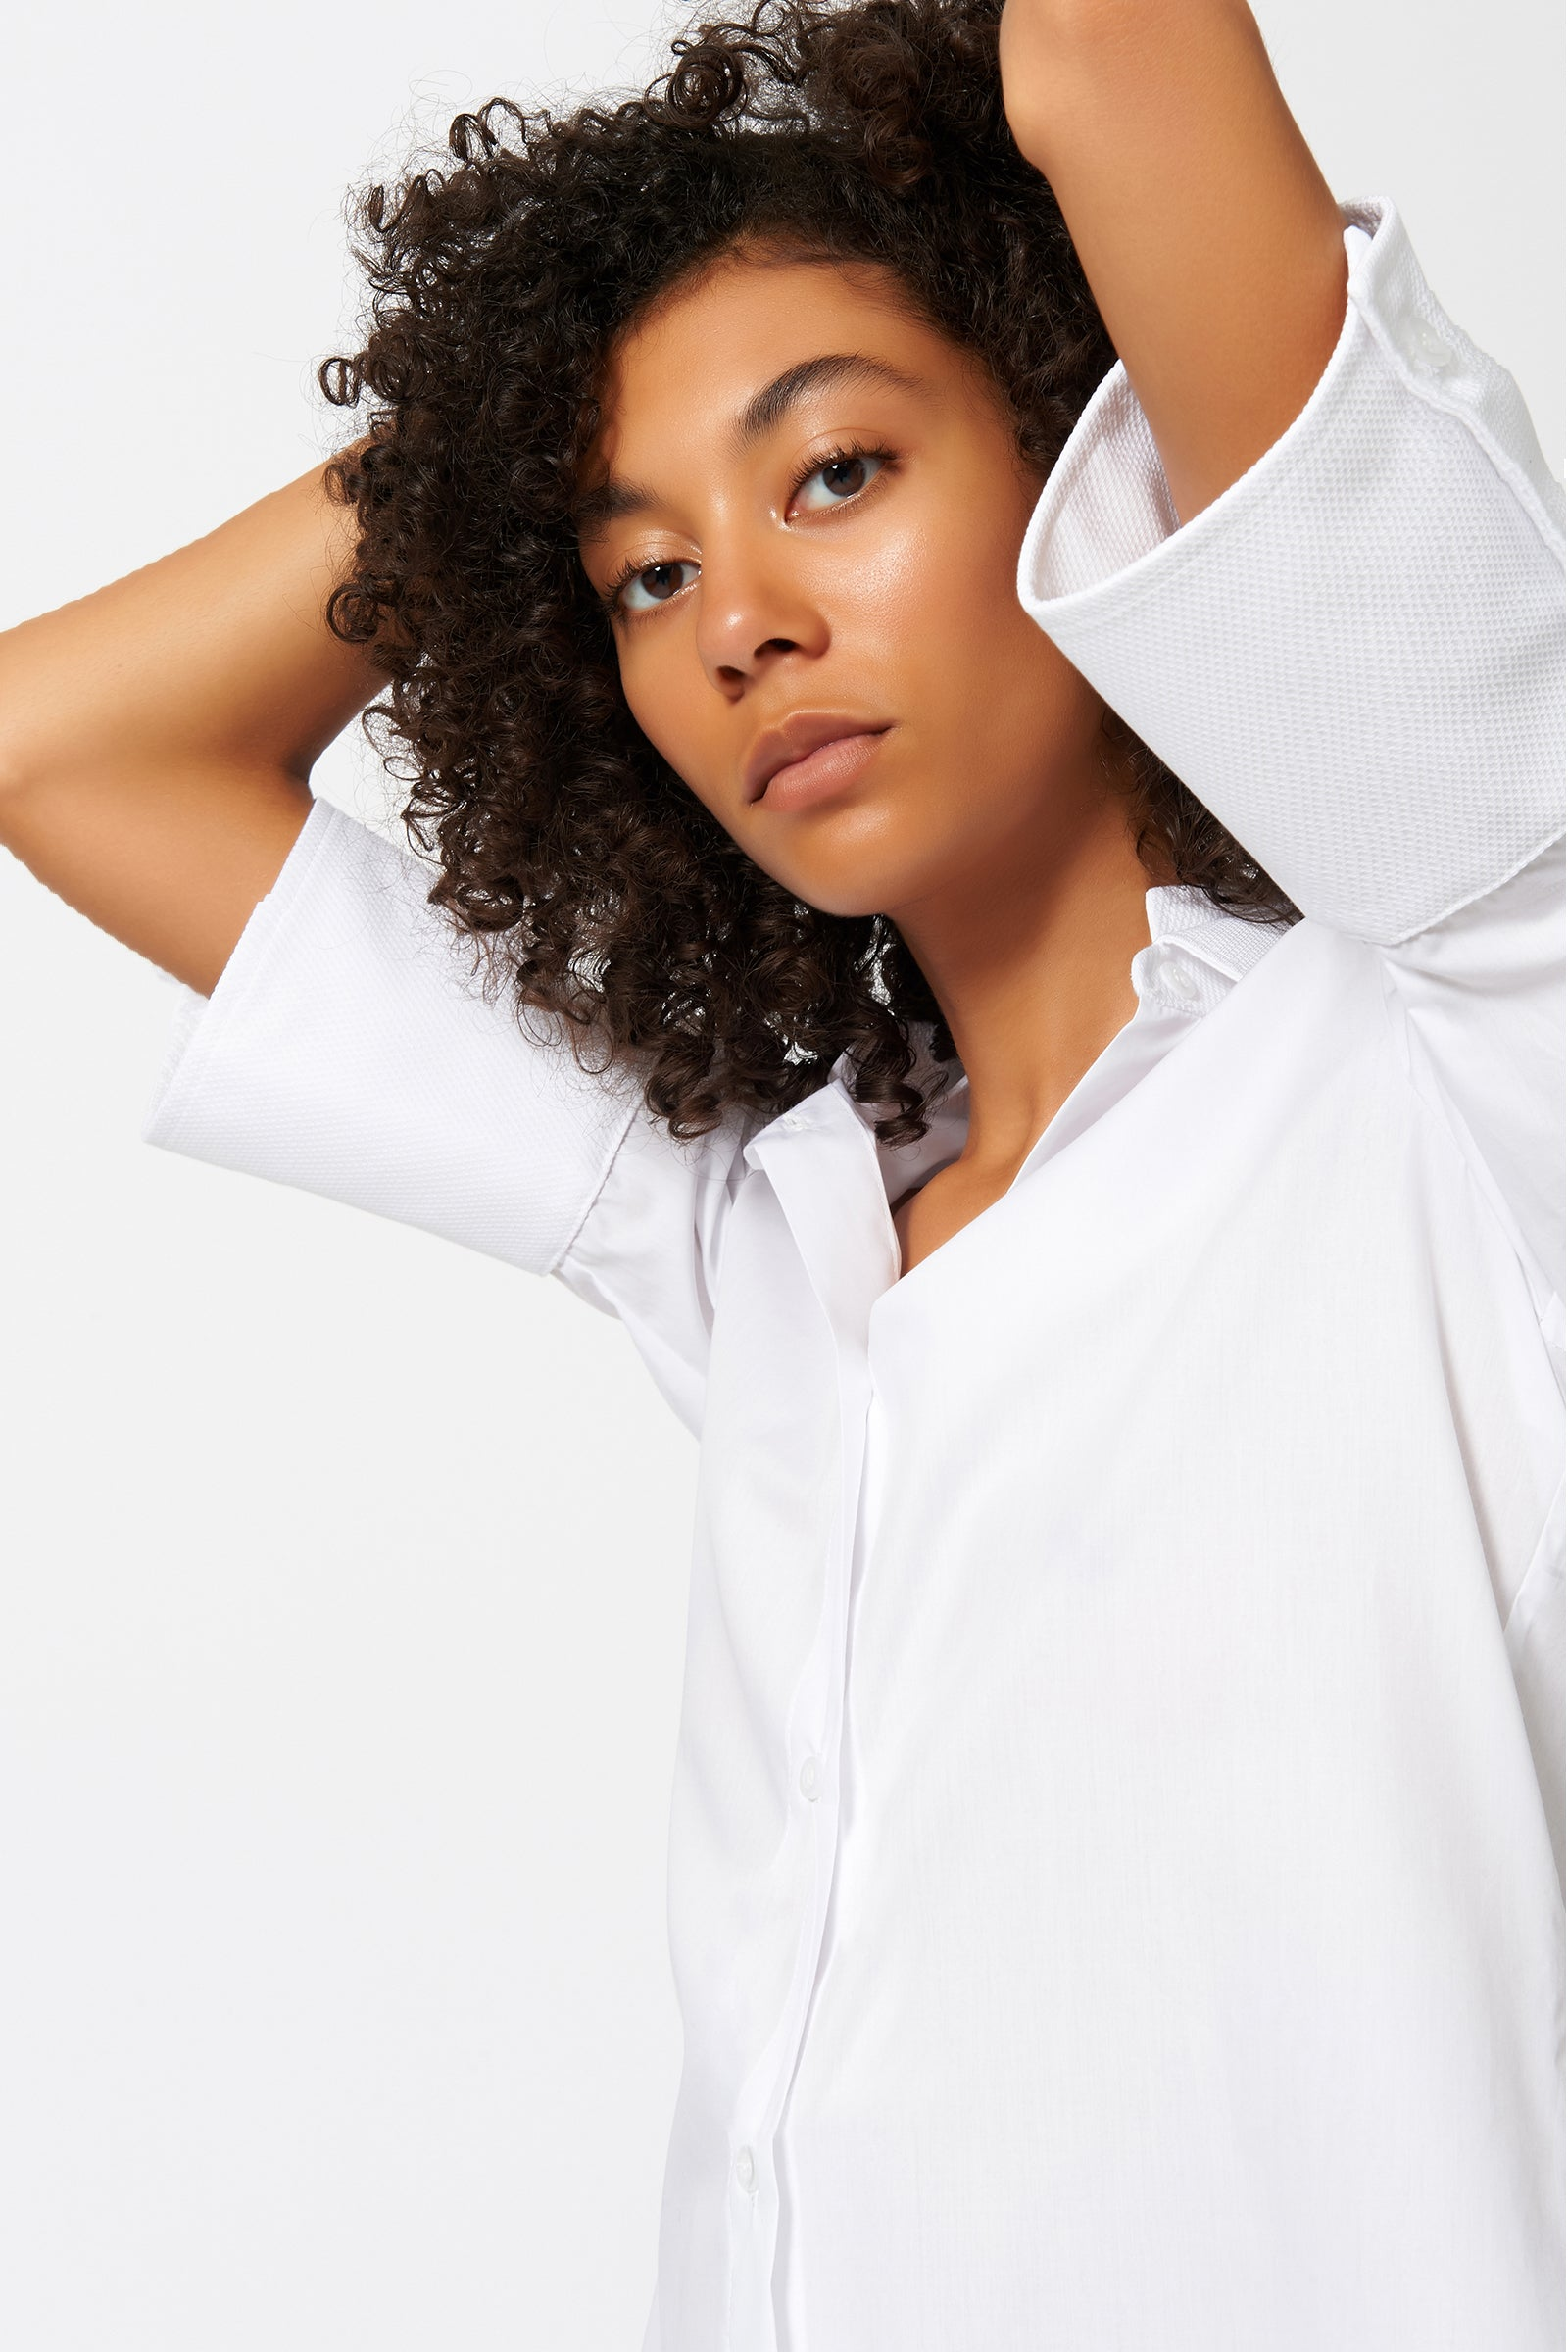 Kal Rieman Double Collar Shirt in White Poplin with Pique on Model Front Detail View